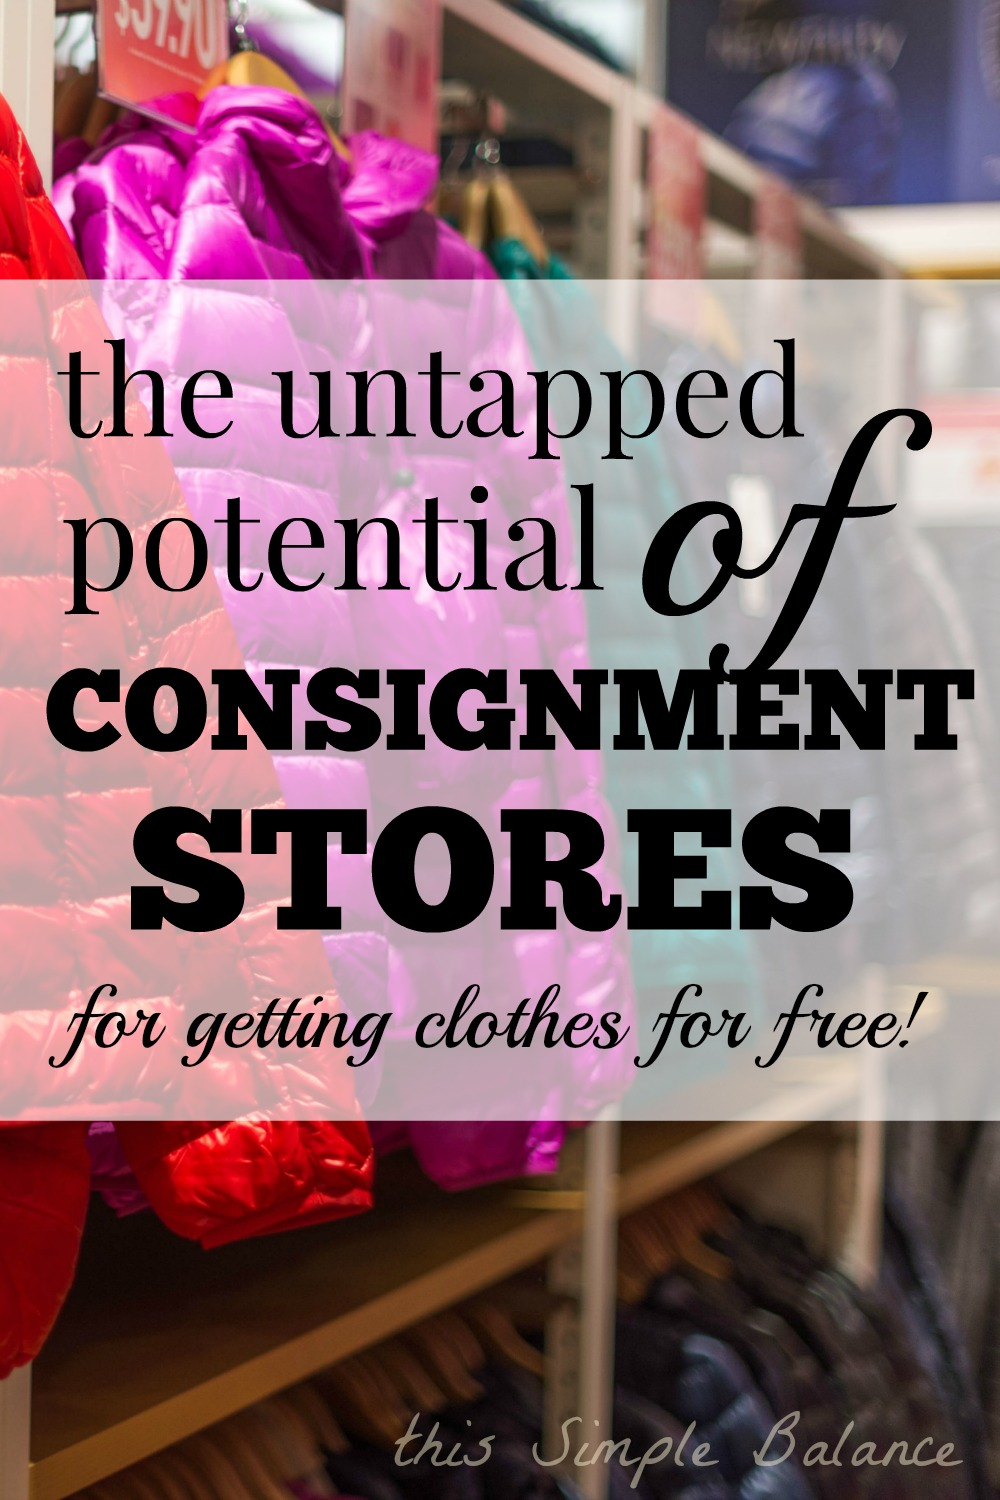 consignment stores, how to sell clothes at consignment stores, are consignment stores worth my time